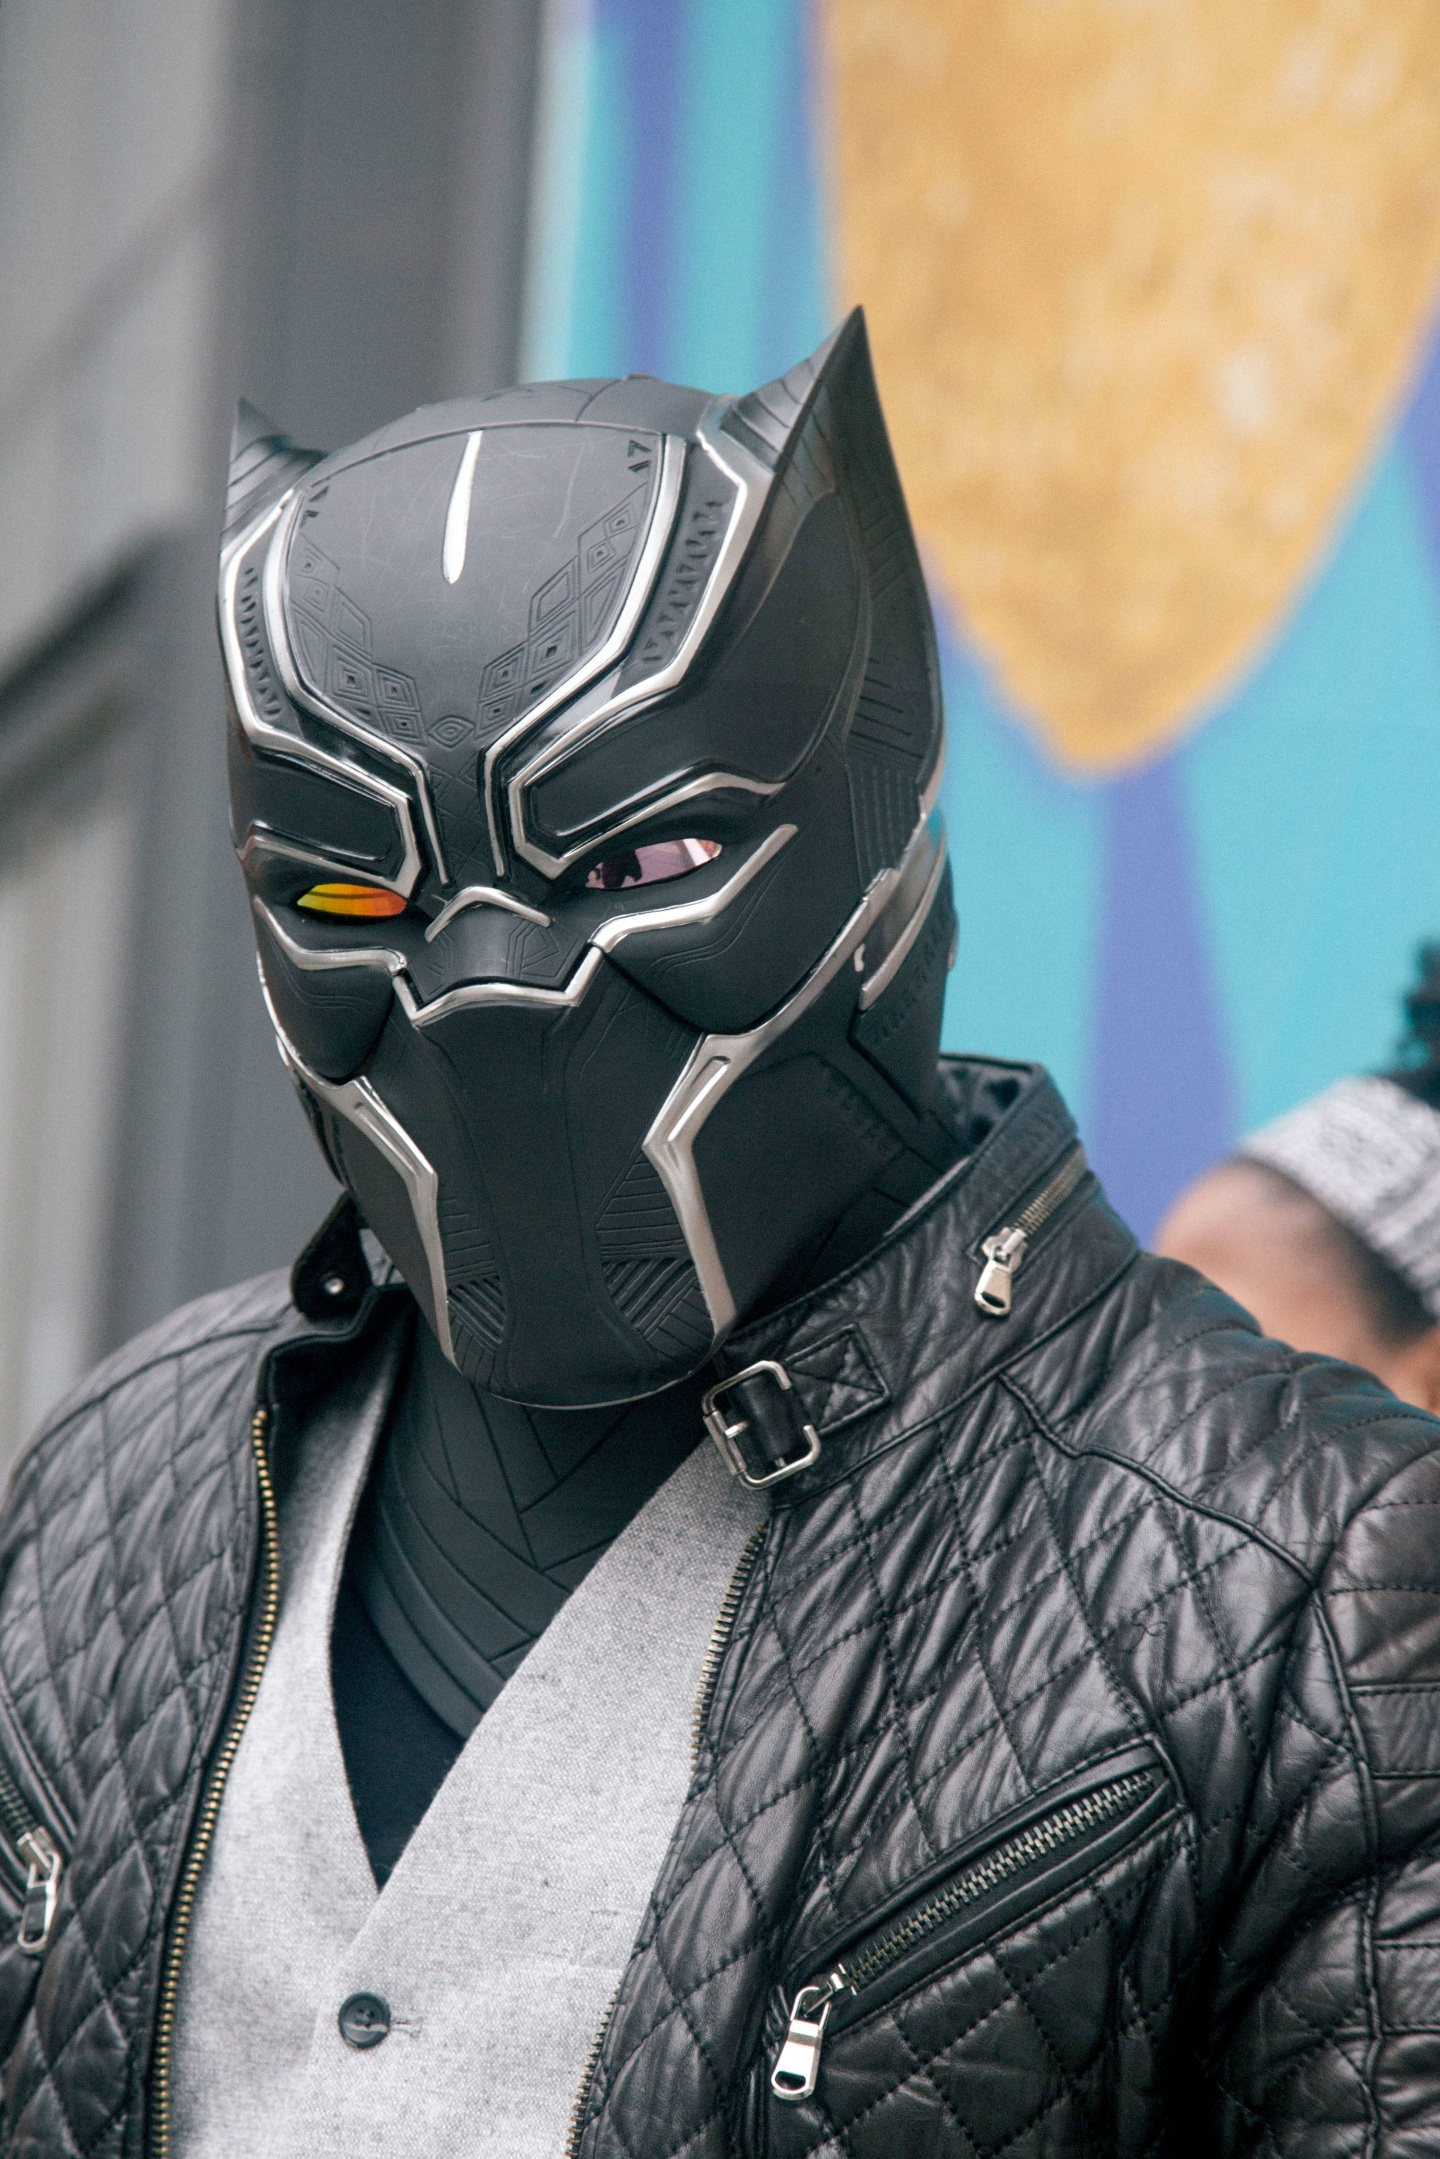 14 fantastic looks spotted during Black Panther's opening weekend